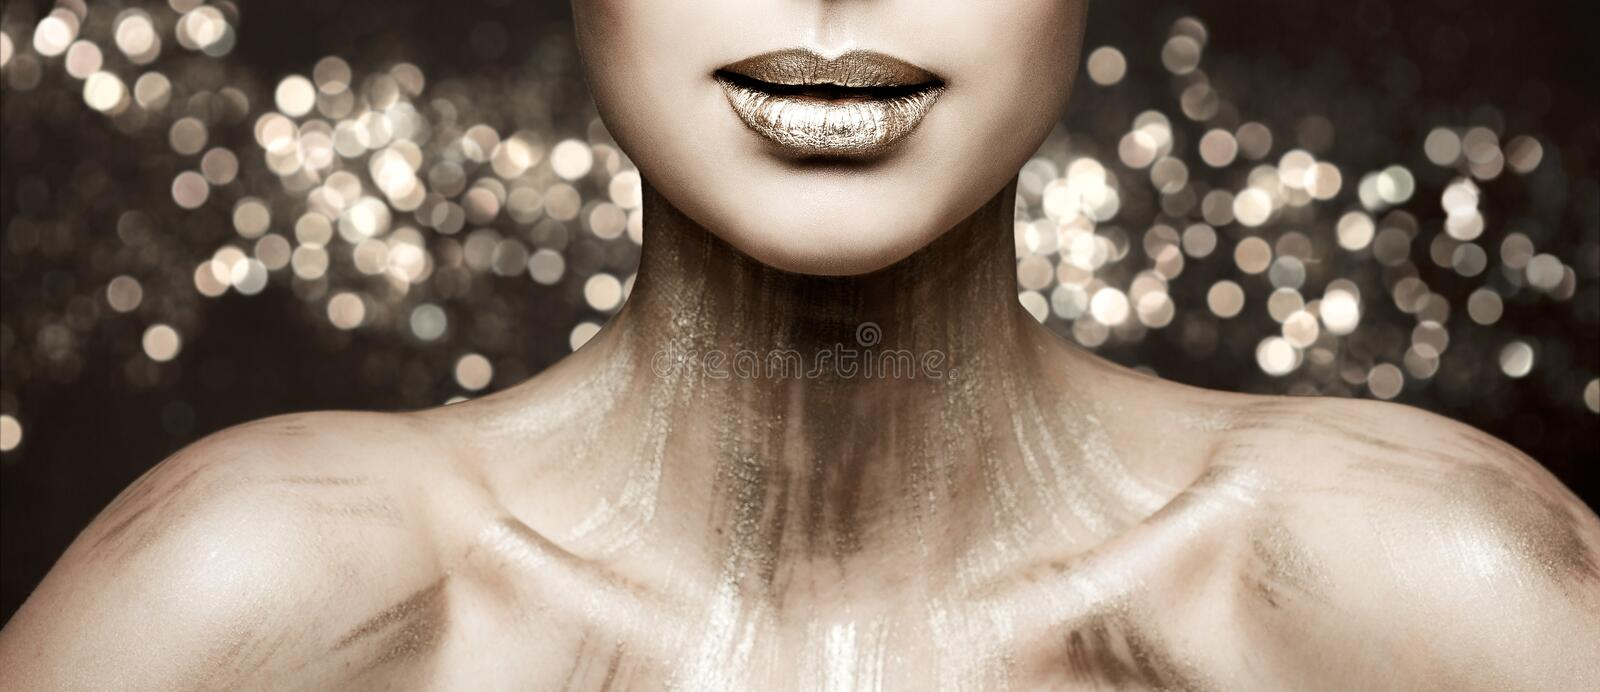 Fashion Lips Beauty Art Makeup, Woman Metallic Lipstick Make Up, Glittering Color stock images